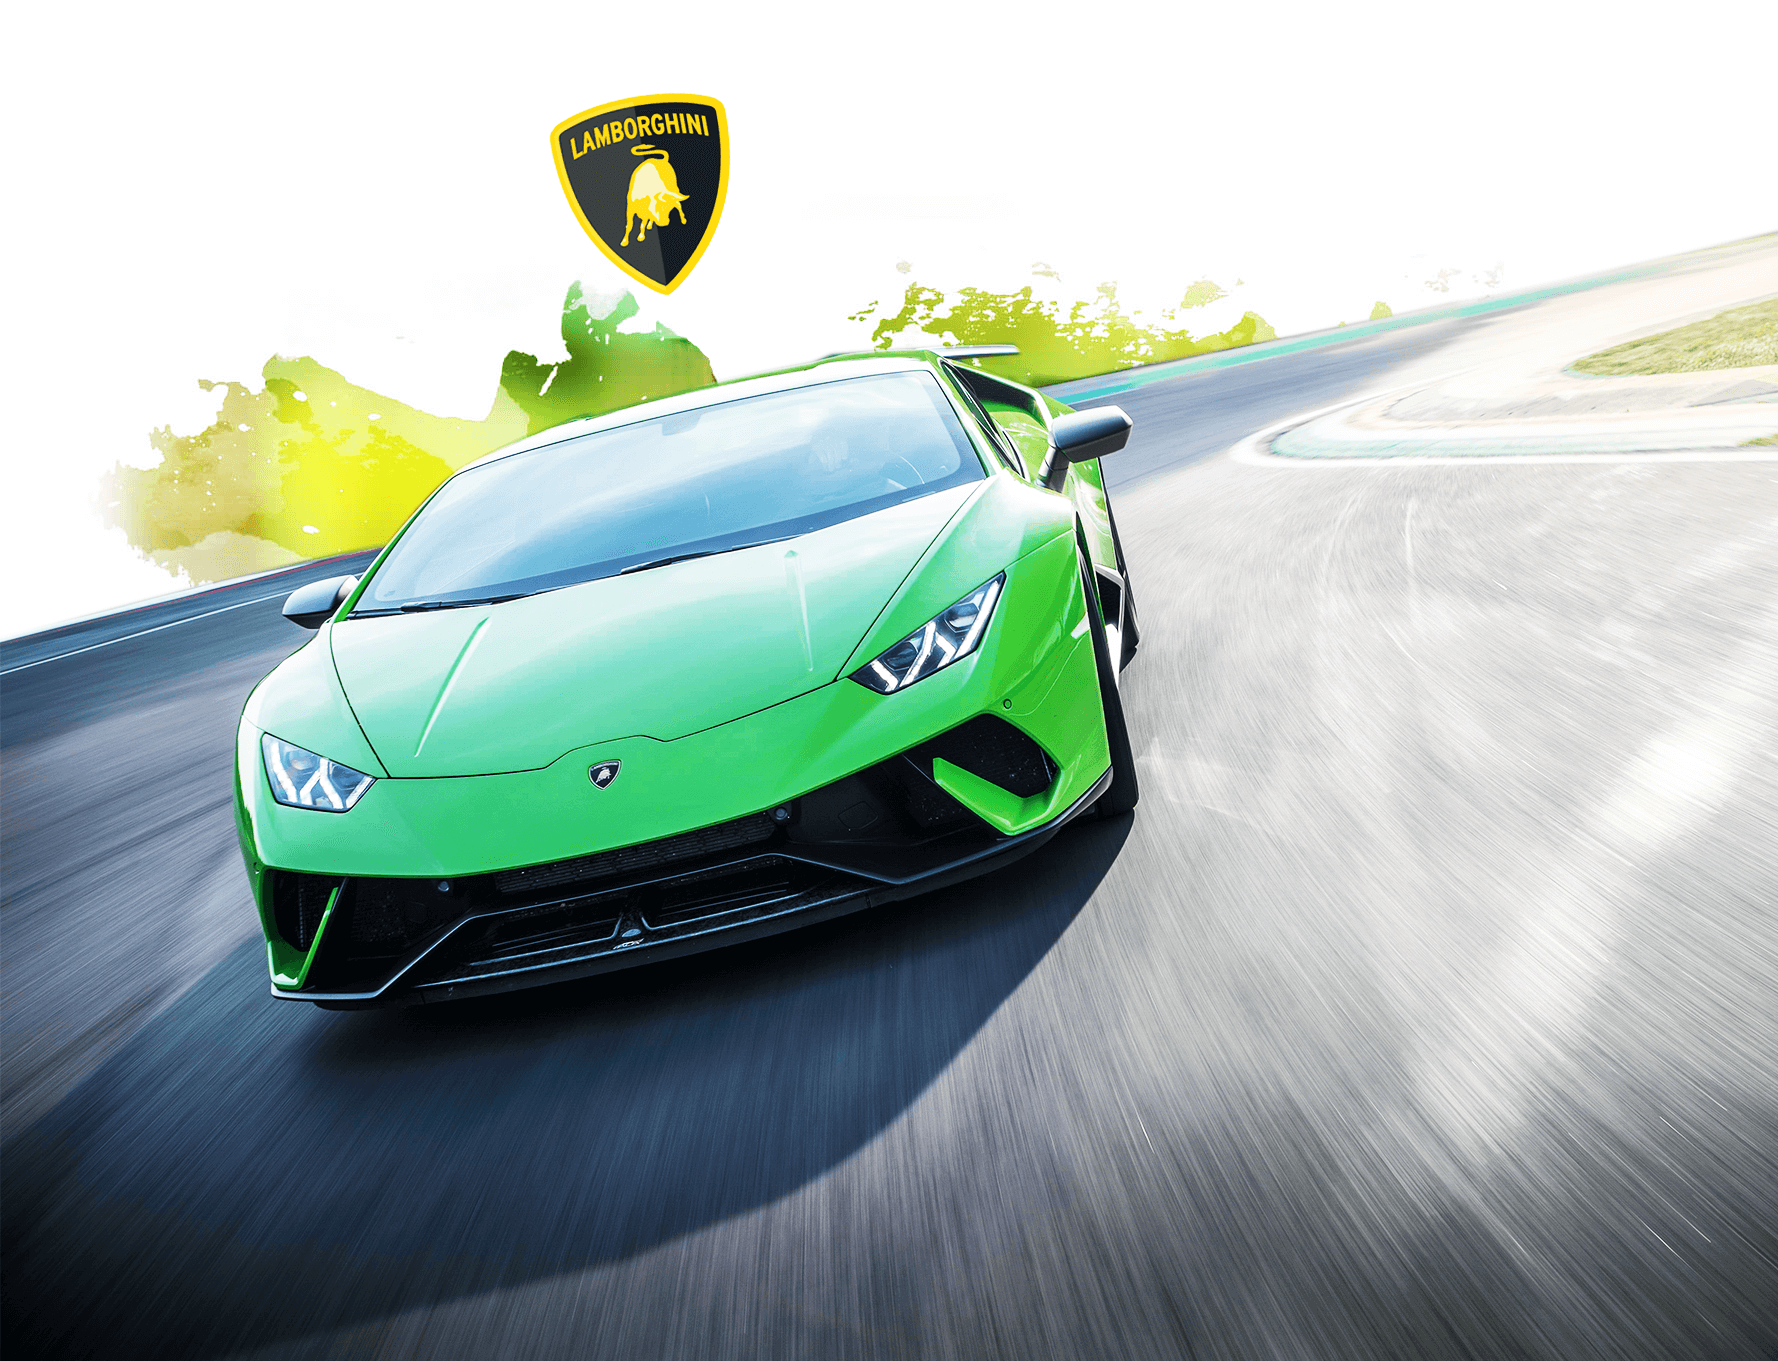 Jeremy Clarkson Picked His Car Of The Year Lamborghini Bold